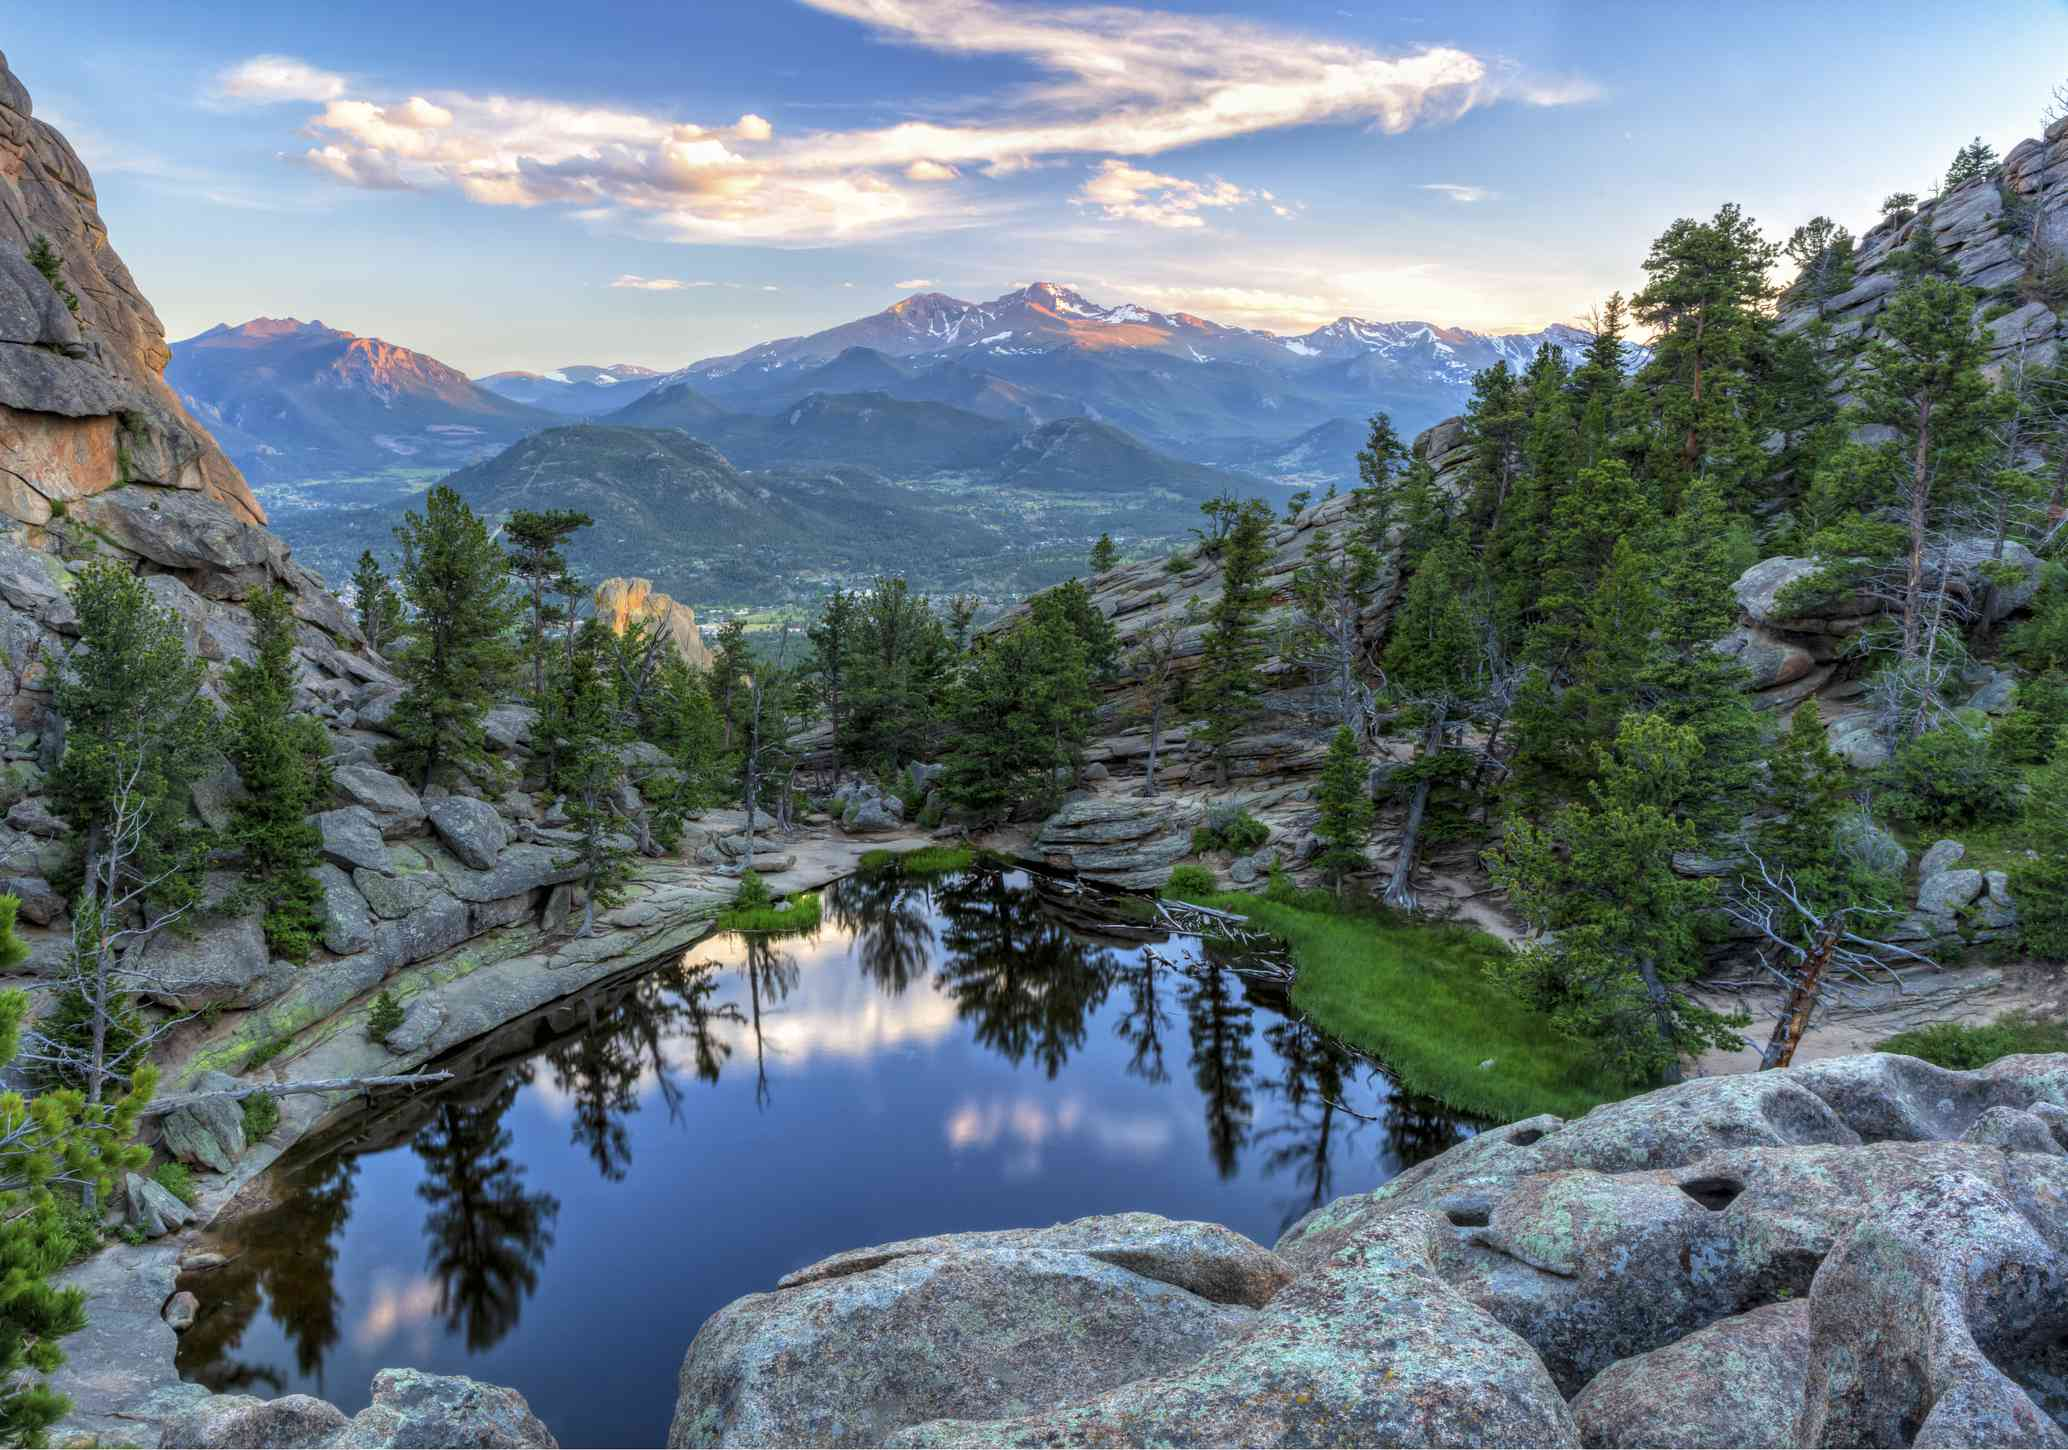 The last evening sunshine hits Longs Peak and The Crags above Gem Lake in Rocky Mountain National Park, Estes Park, Colorado